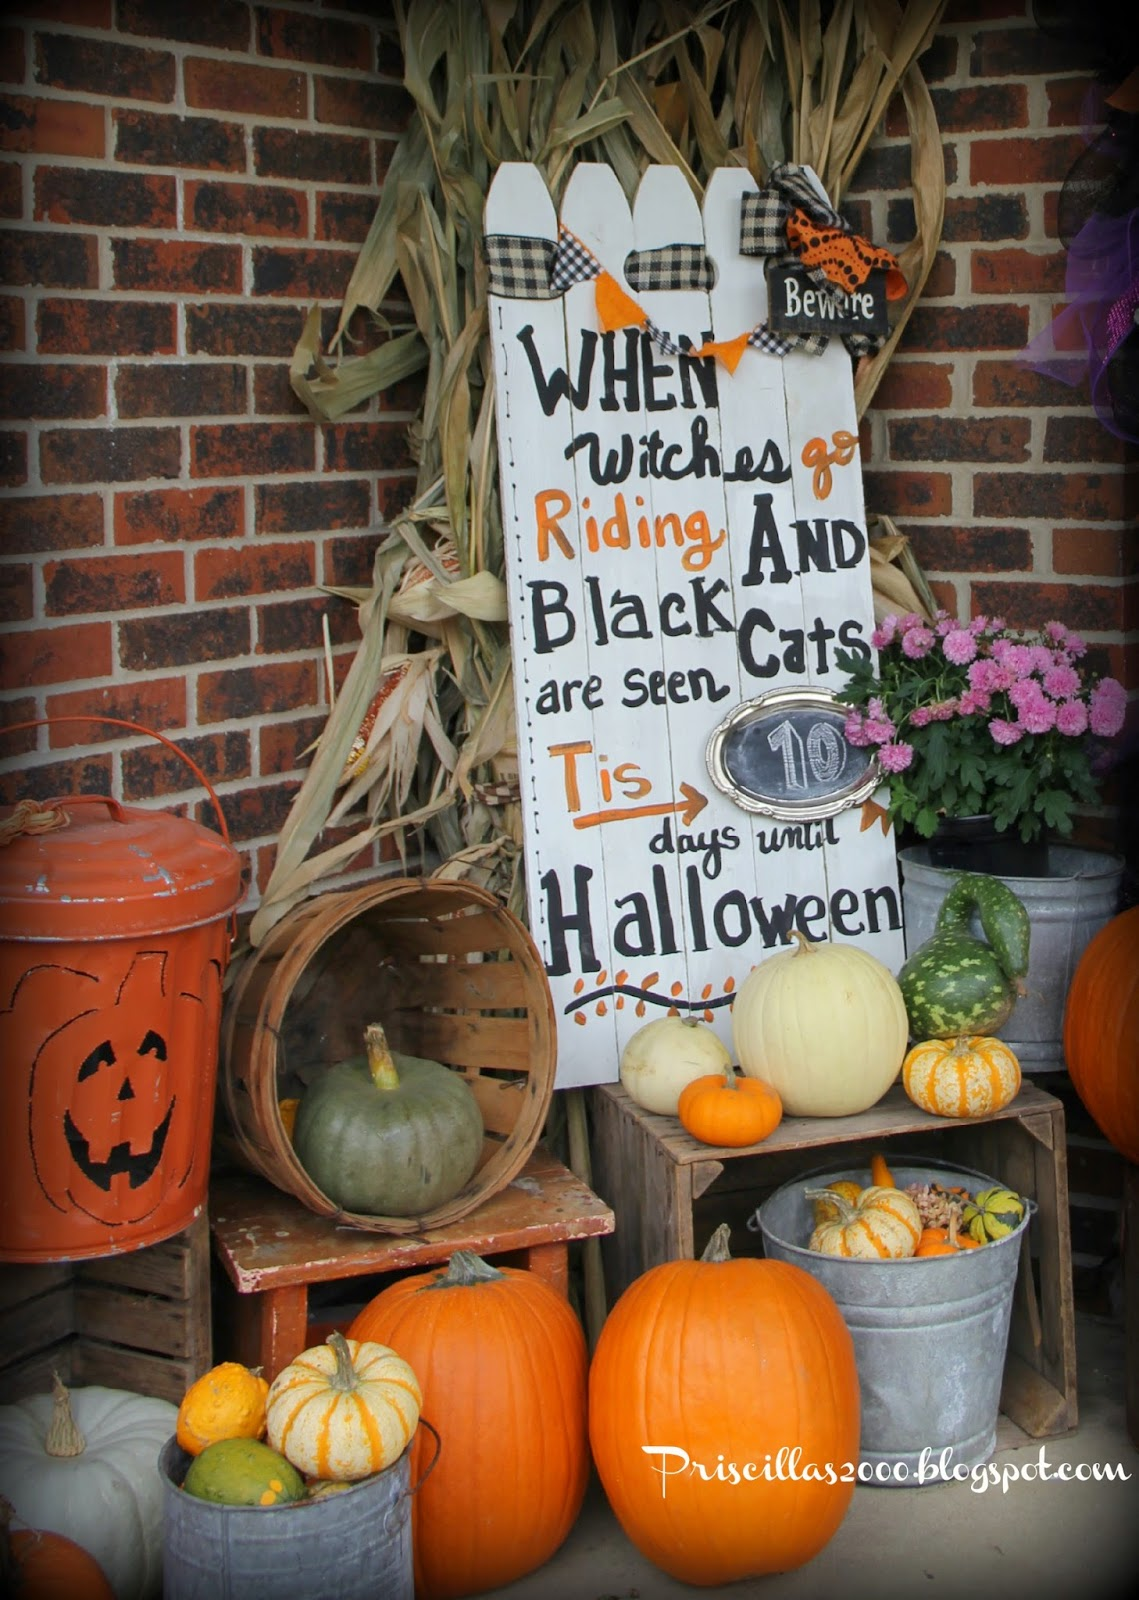 Pricilla's Halloween Front Porch Treasure Hunt Thursday Link Party From My Front Porch To Yours